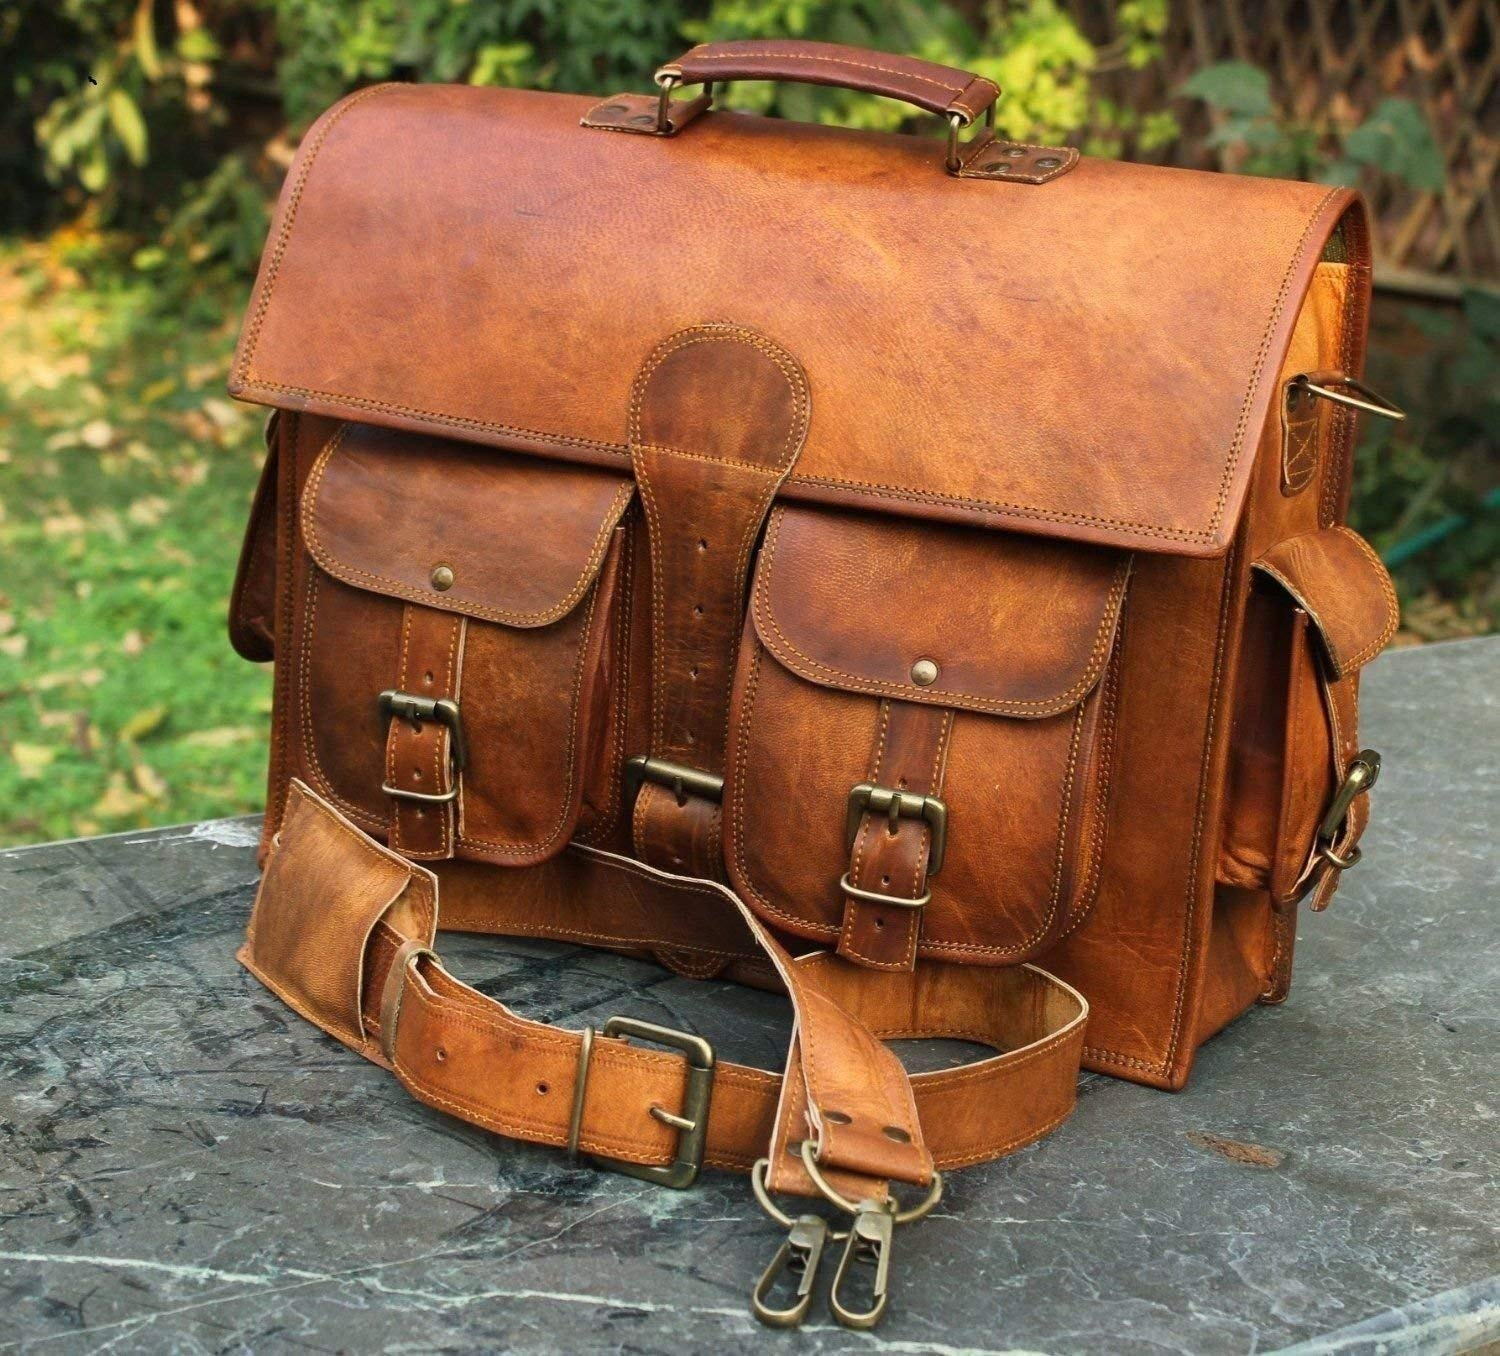 934af7af1c7 Get Quotations · Men s Genuine Leather Vintage Laptop Messenger Handmade  Briefcase Bag Satchel DHK